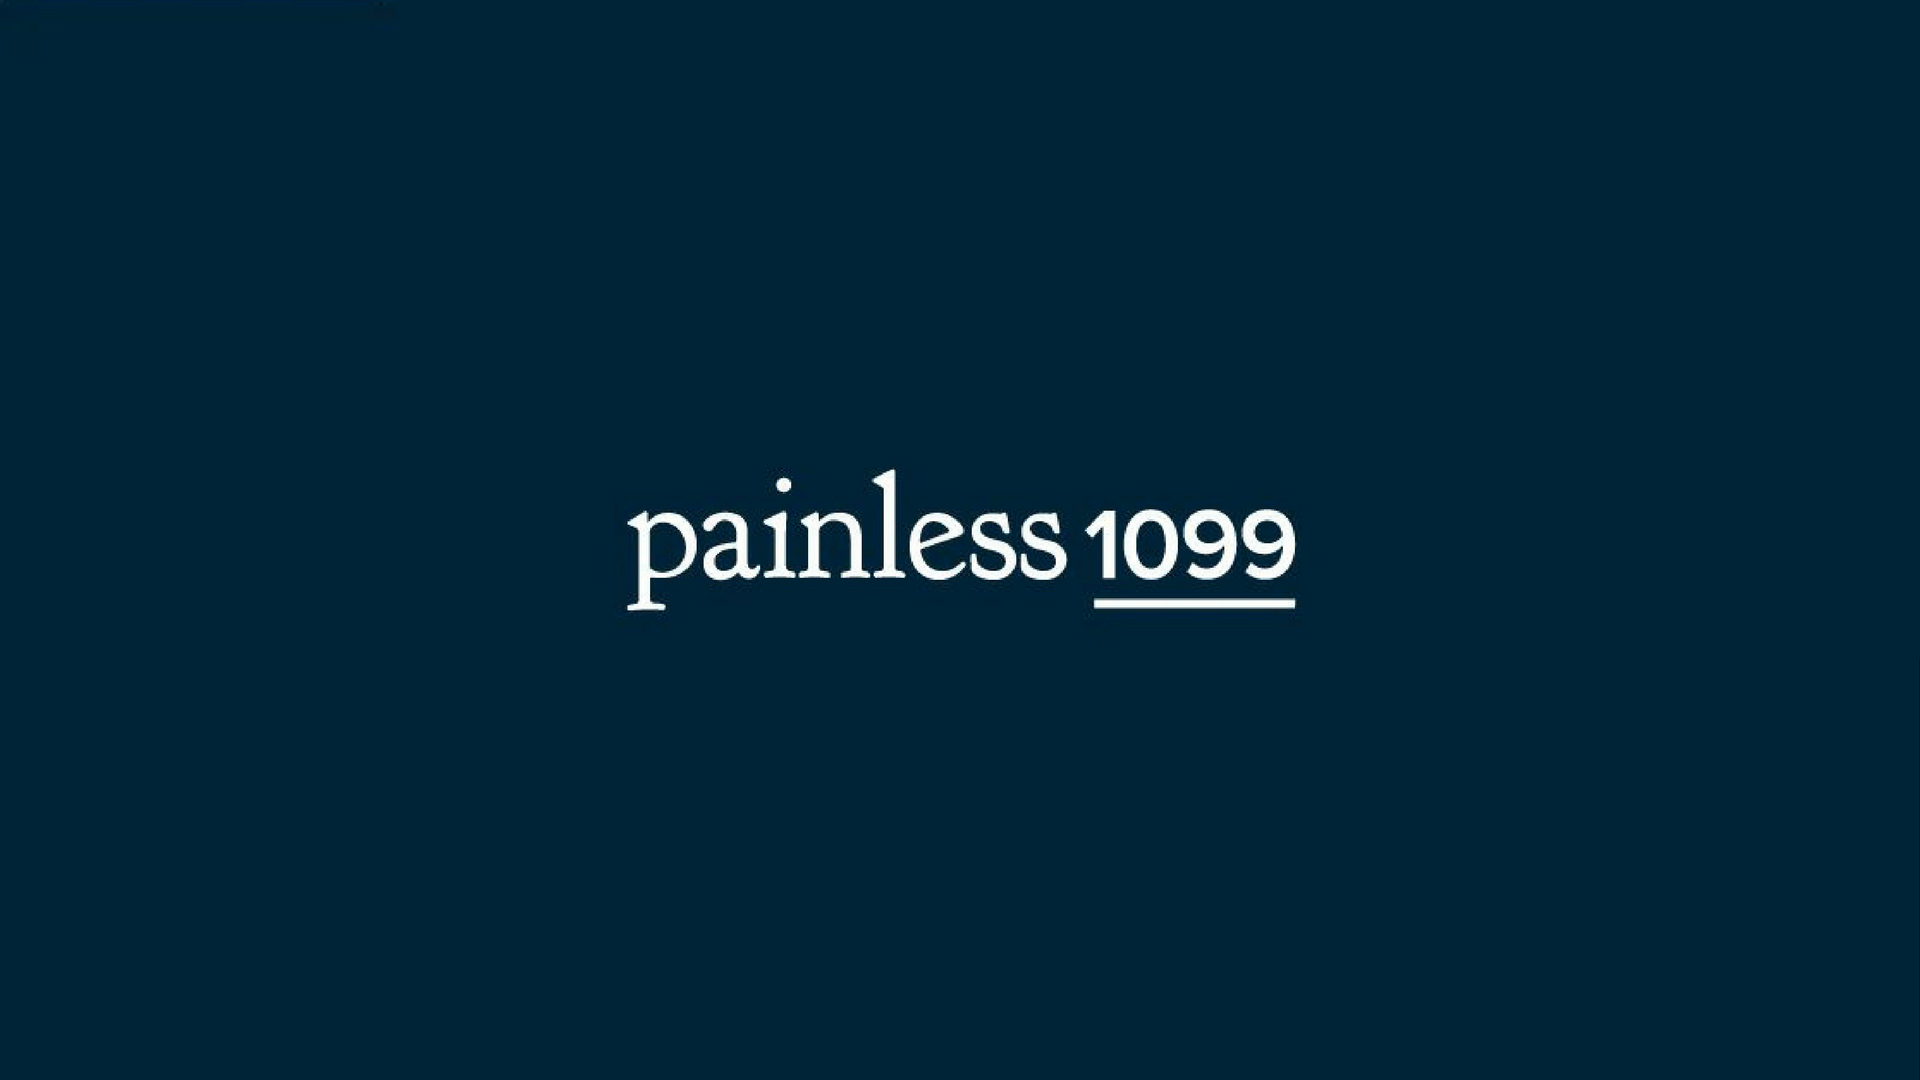 Painless 1099